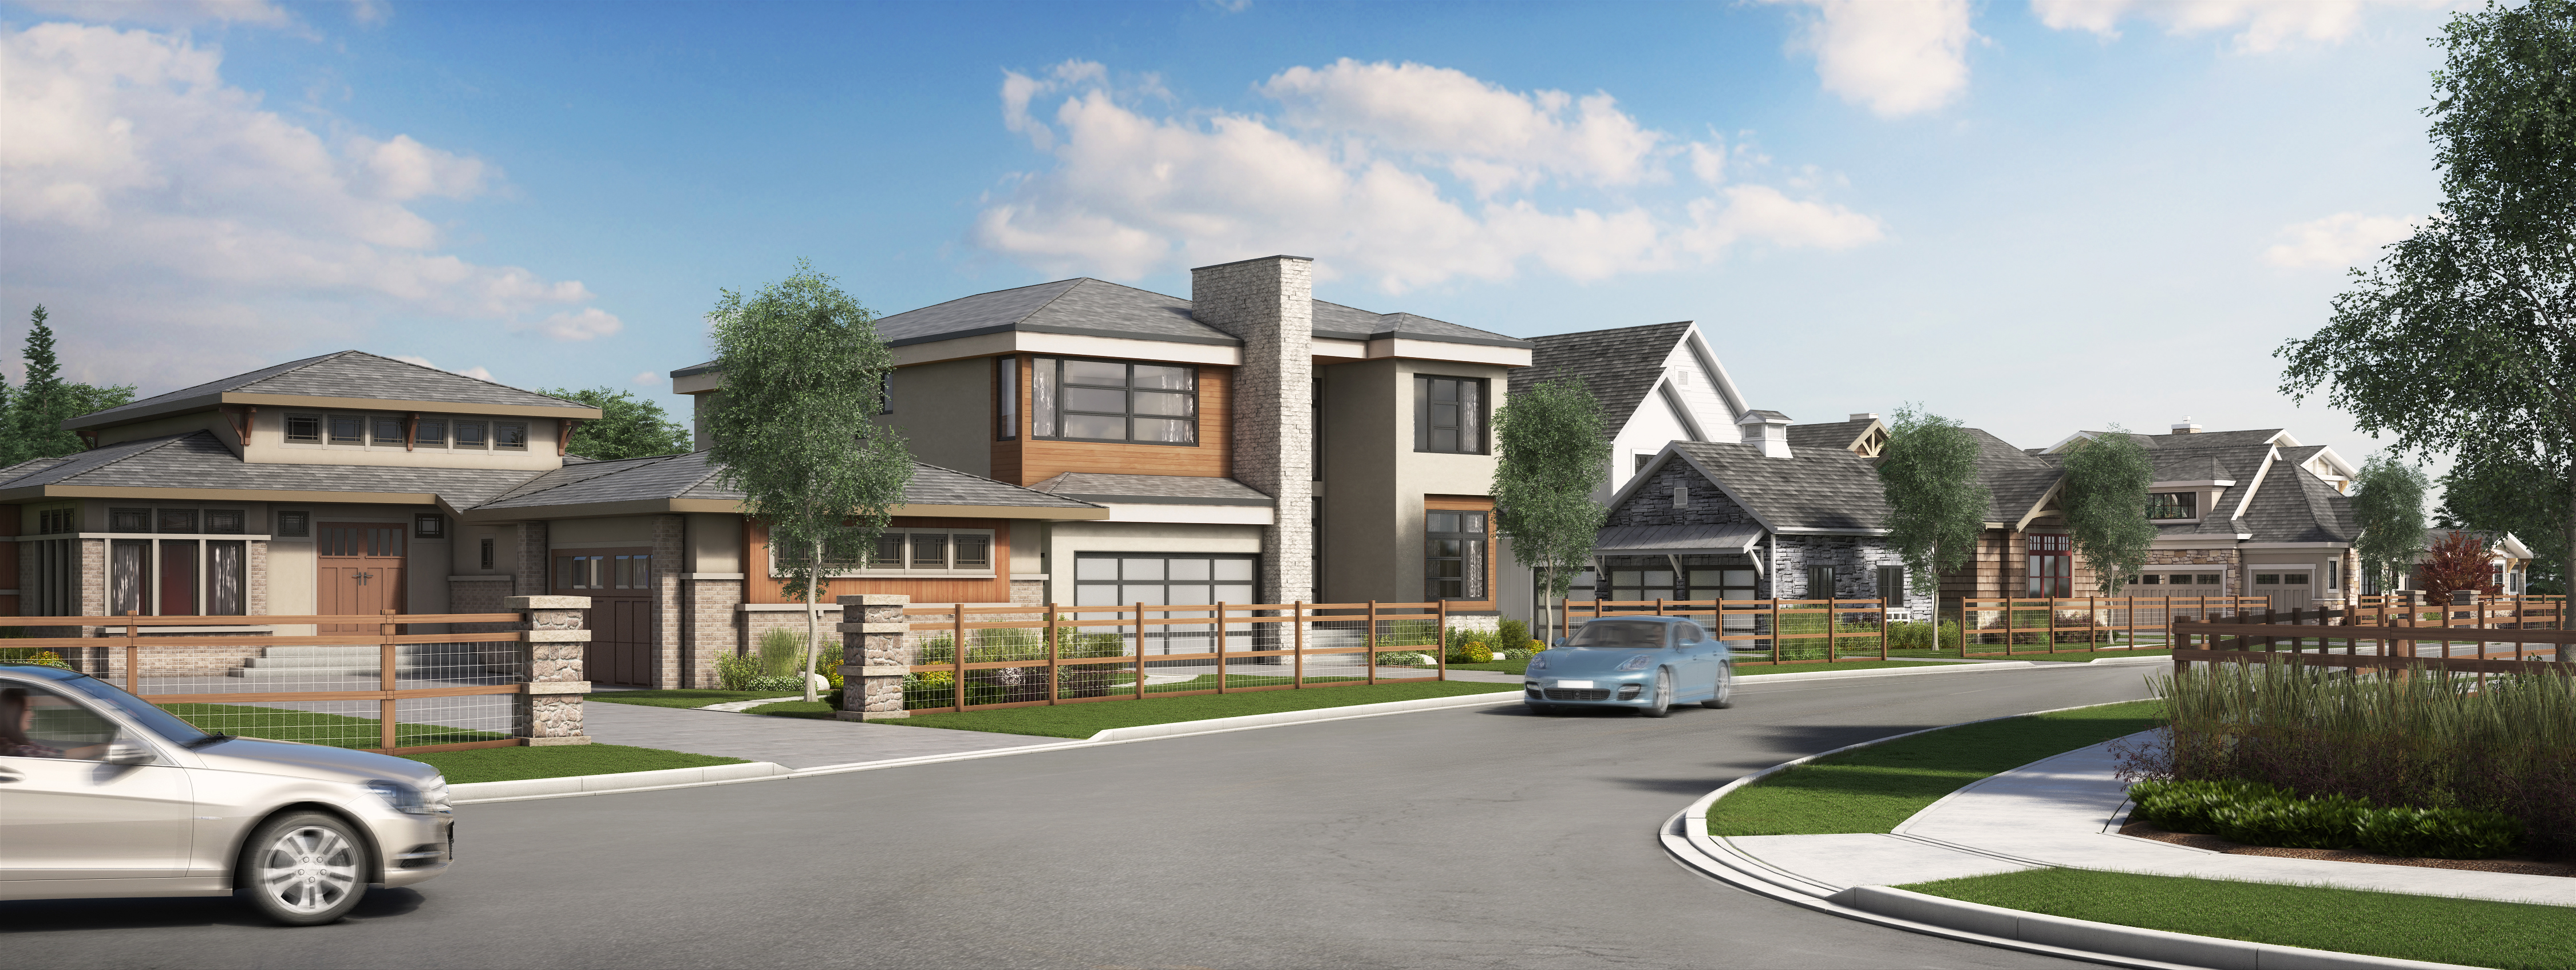 Show Homes Live In Harmony